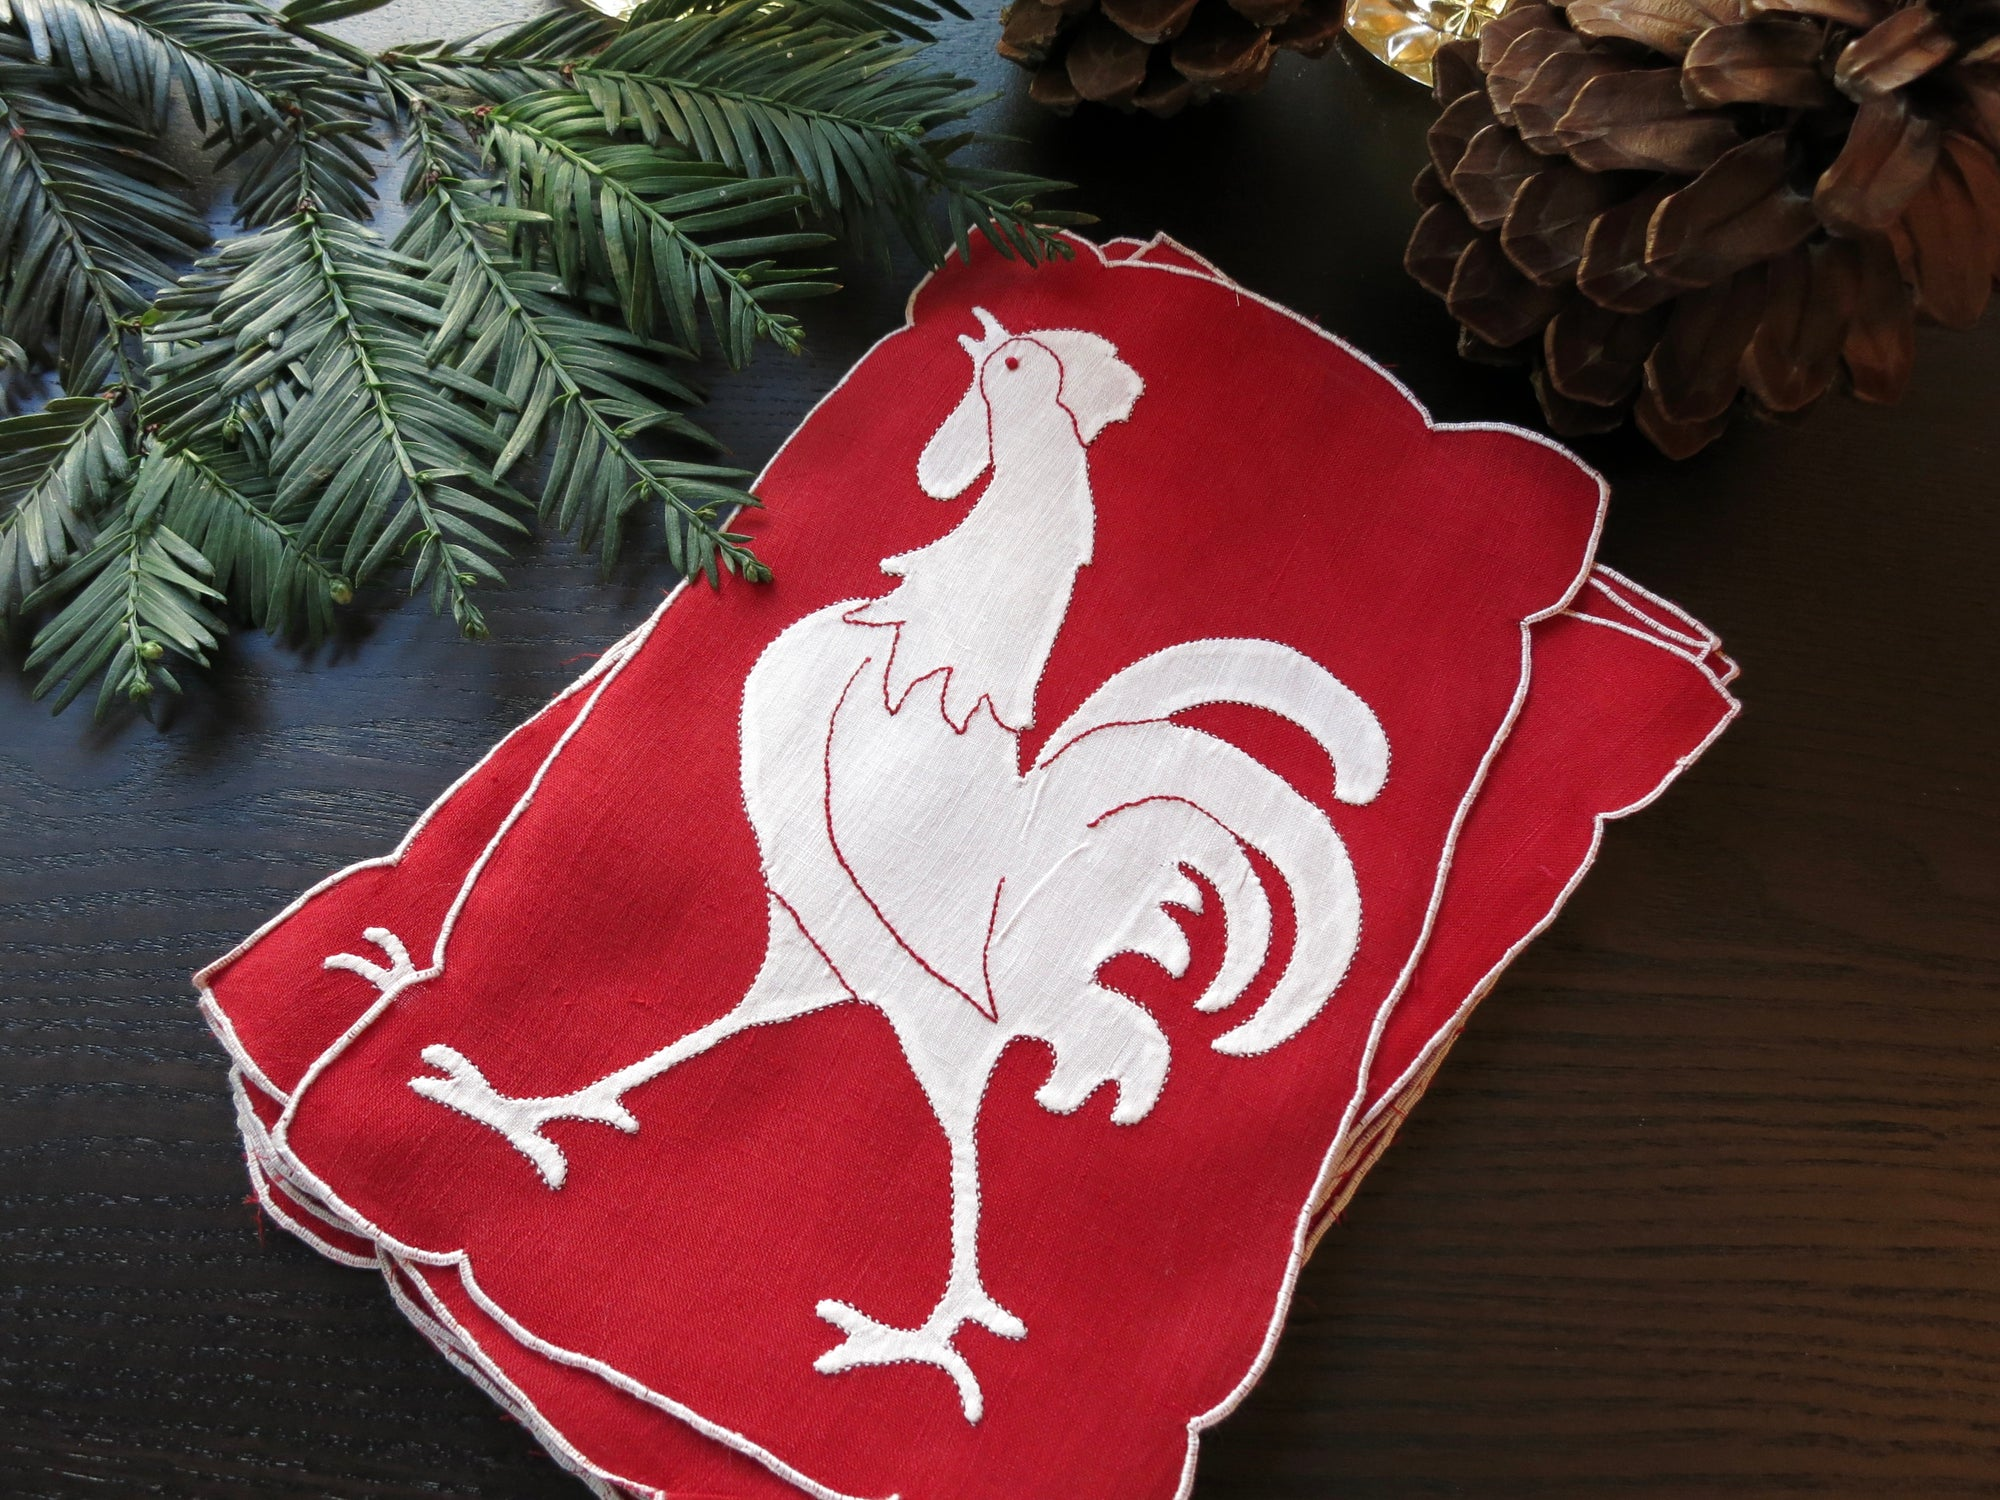 Christmas Cocktails Classic Rooster Vintage Madeira Cocktail Napkins - Set of 6